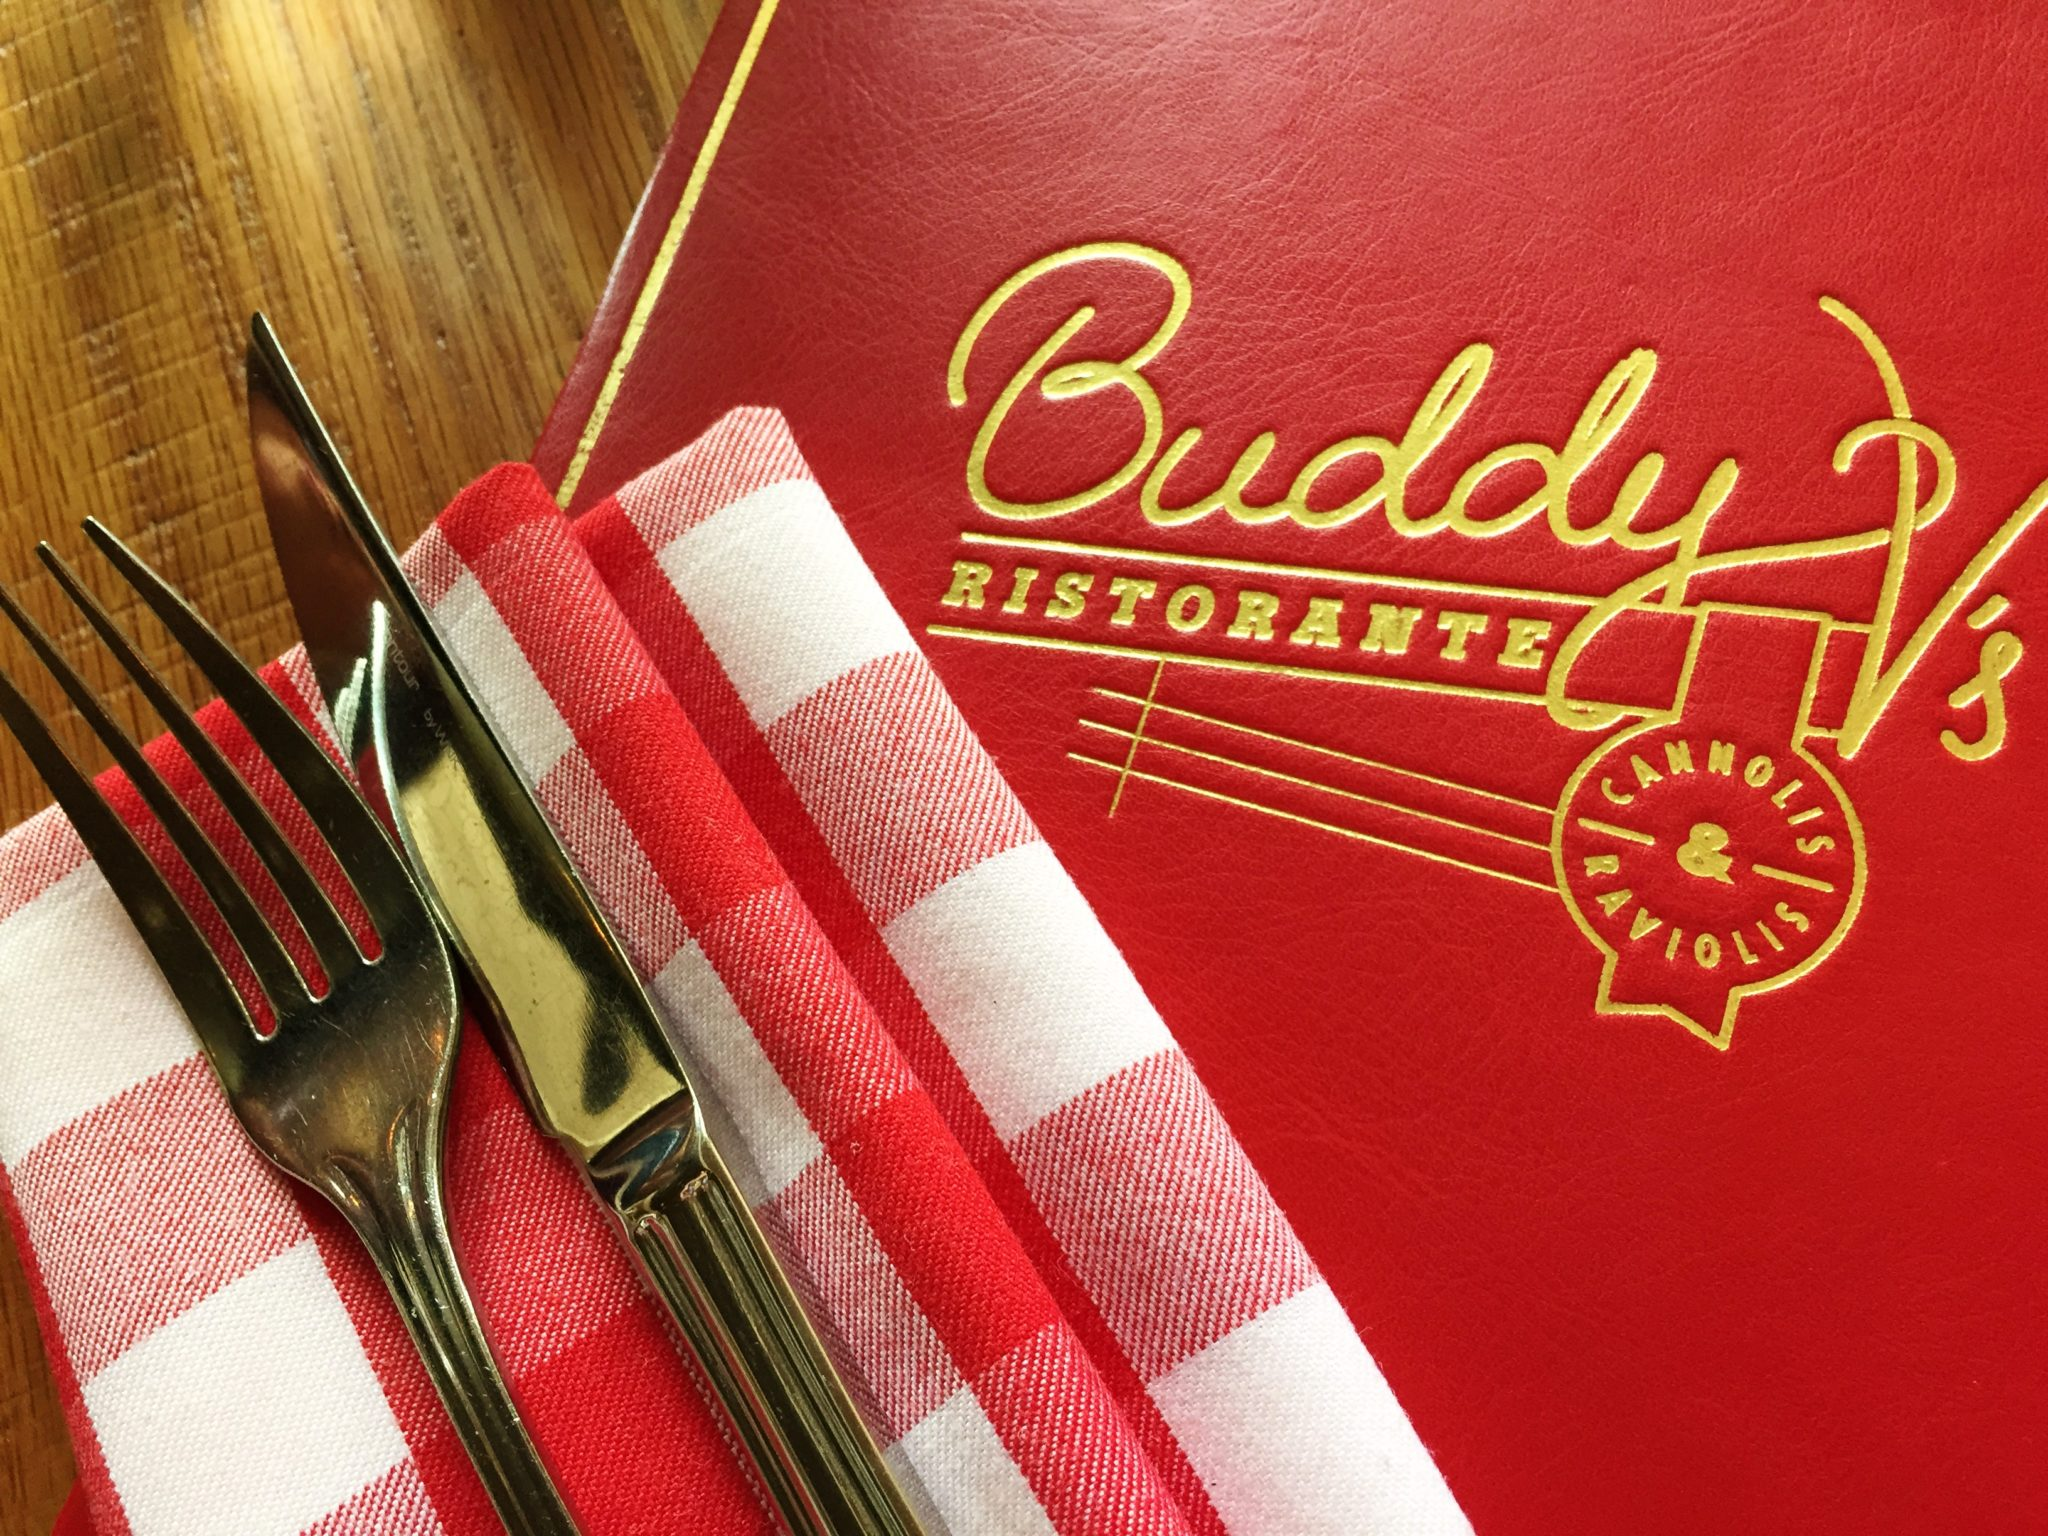 Enjoy Celebrity Radio's Review Buddy V's Venetian Las Vegas Sunday Brunch….. Buddy V's Ristorante is one of my favourite relaxed, fun & exciting restaurants in […]